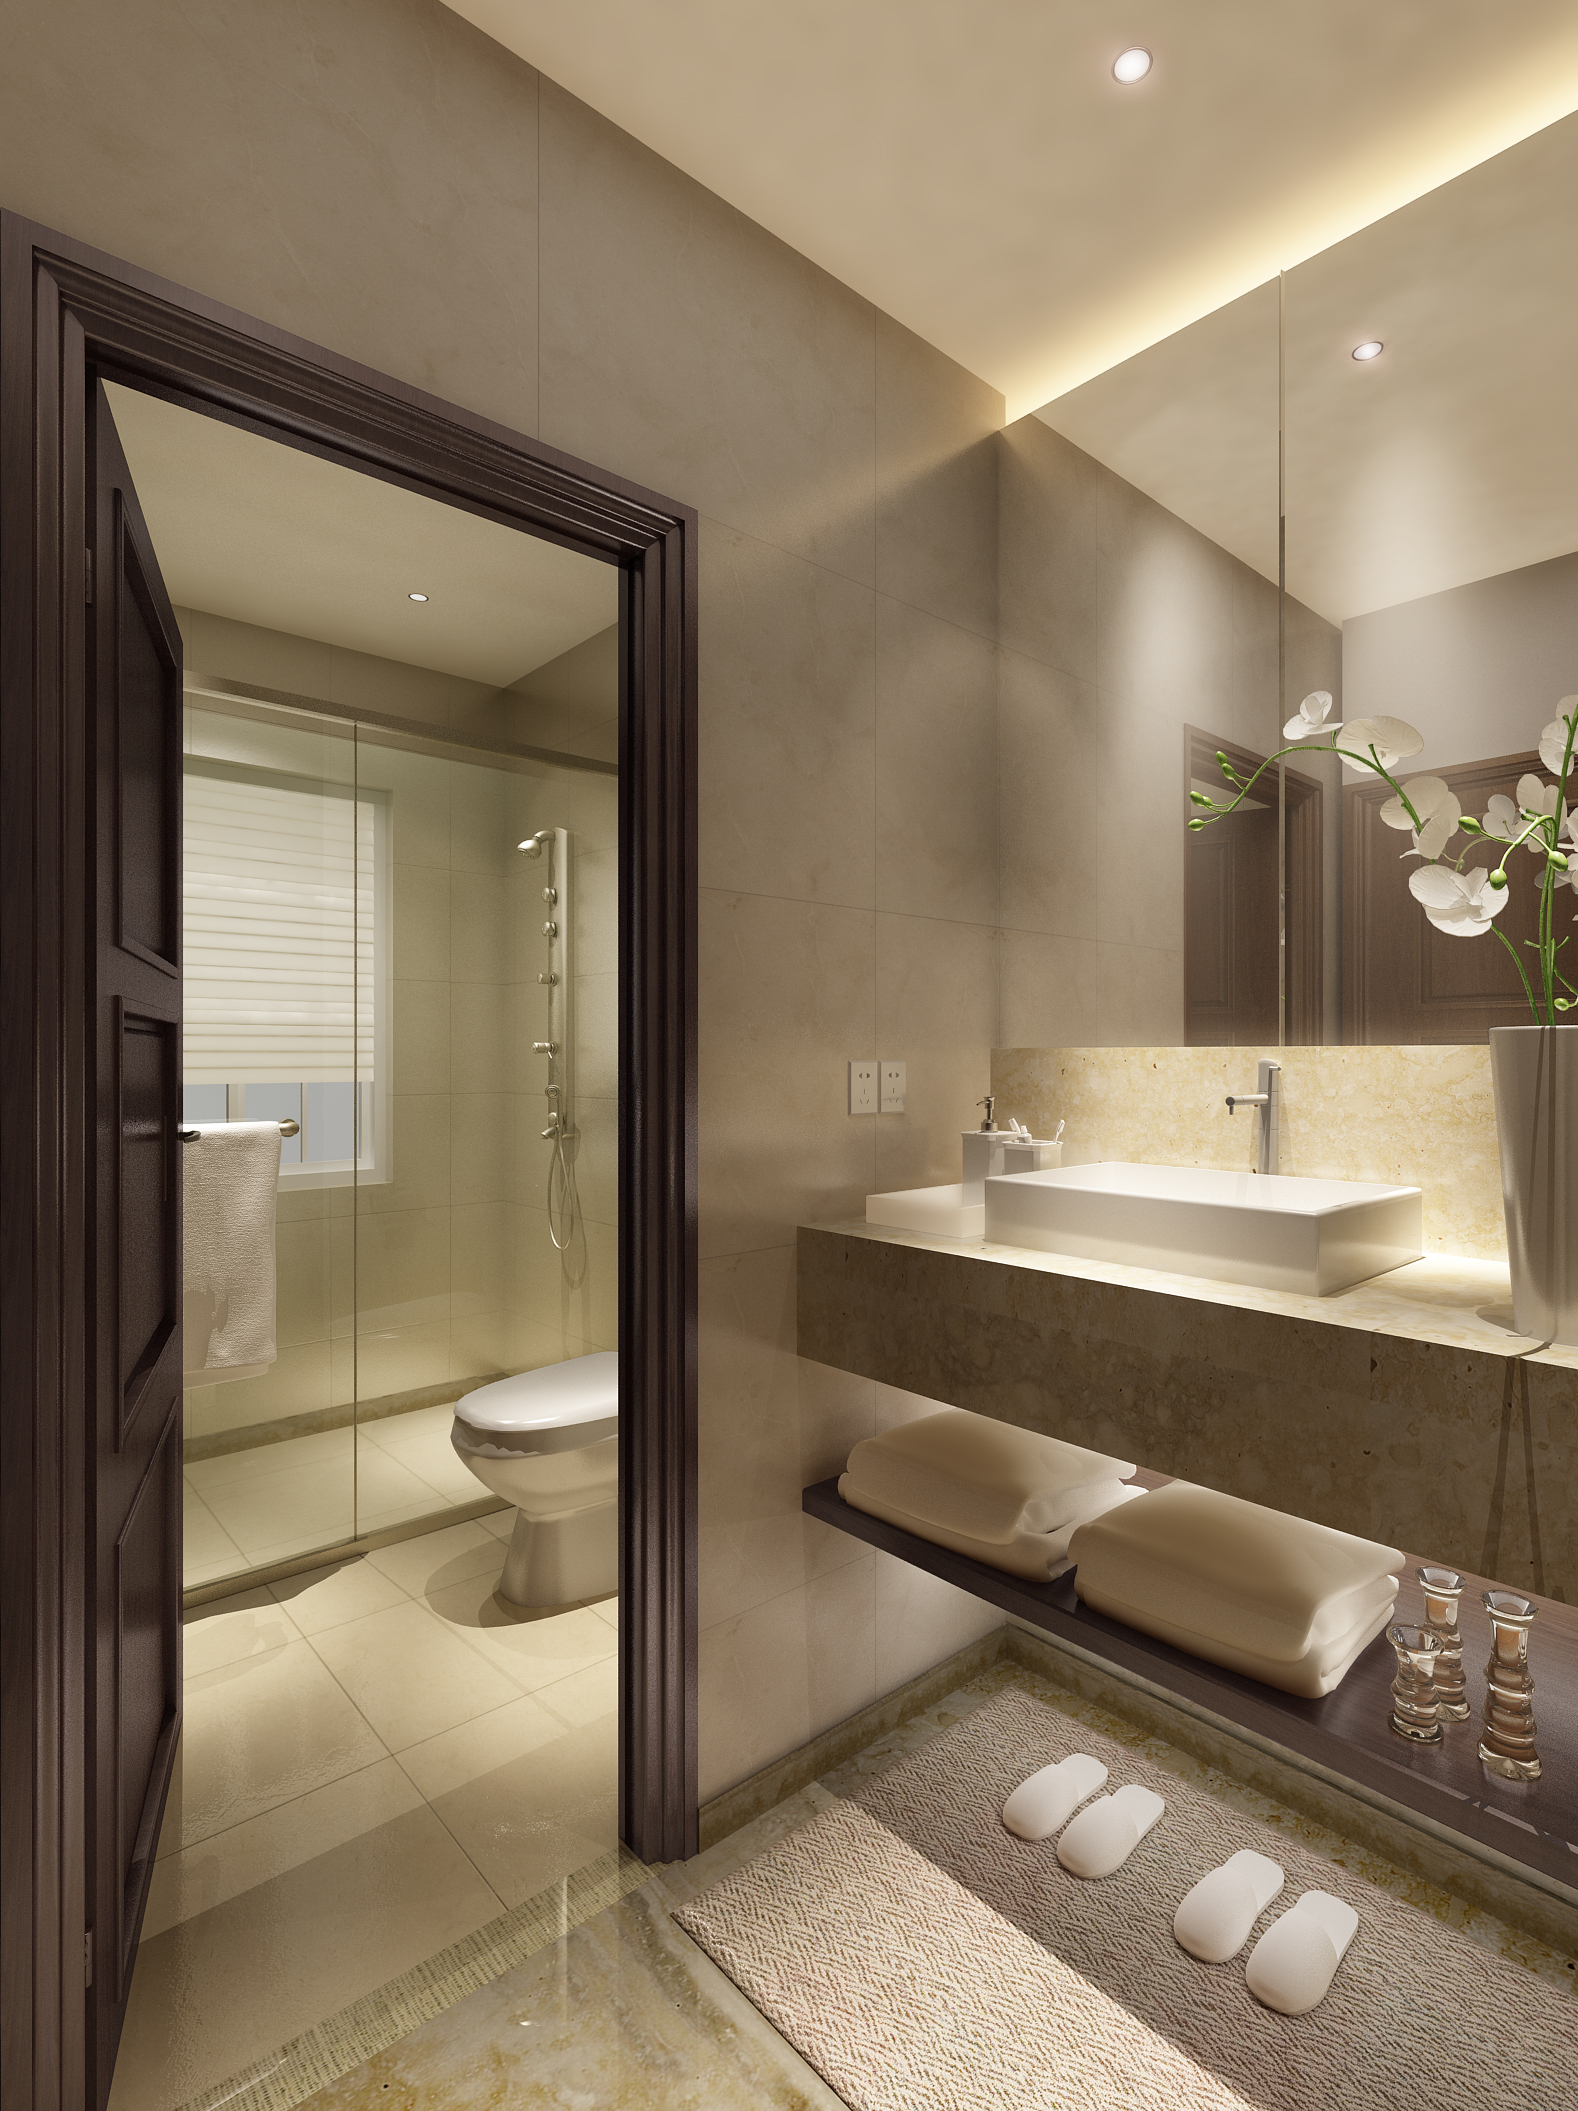 Luxurious bathroom with marble floor 3d model max for Bathroom models photos